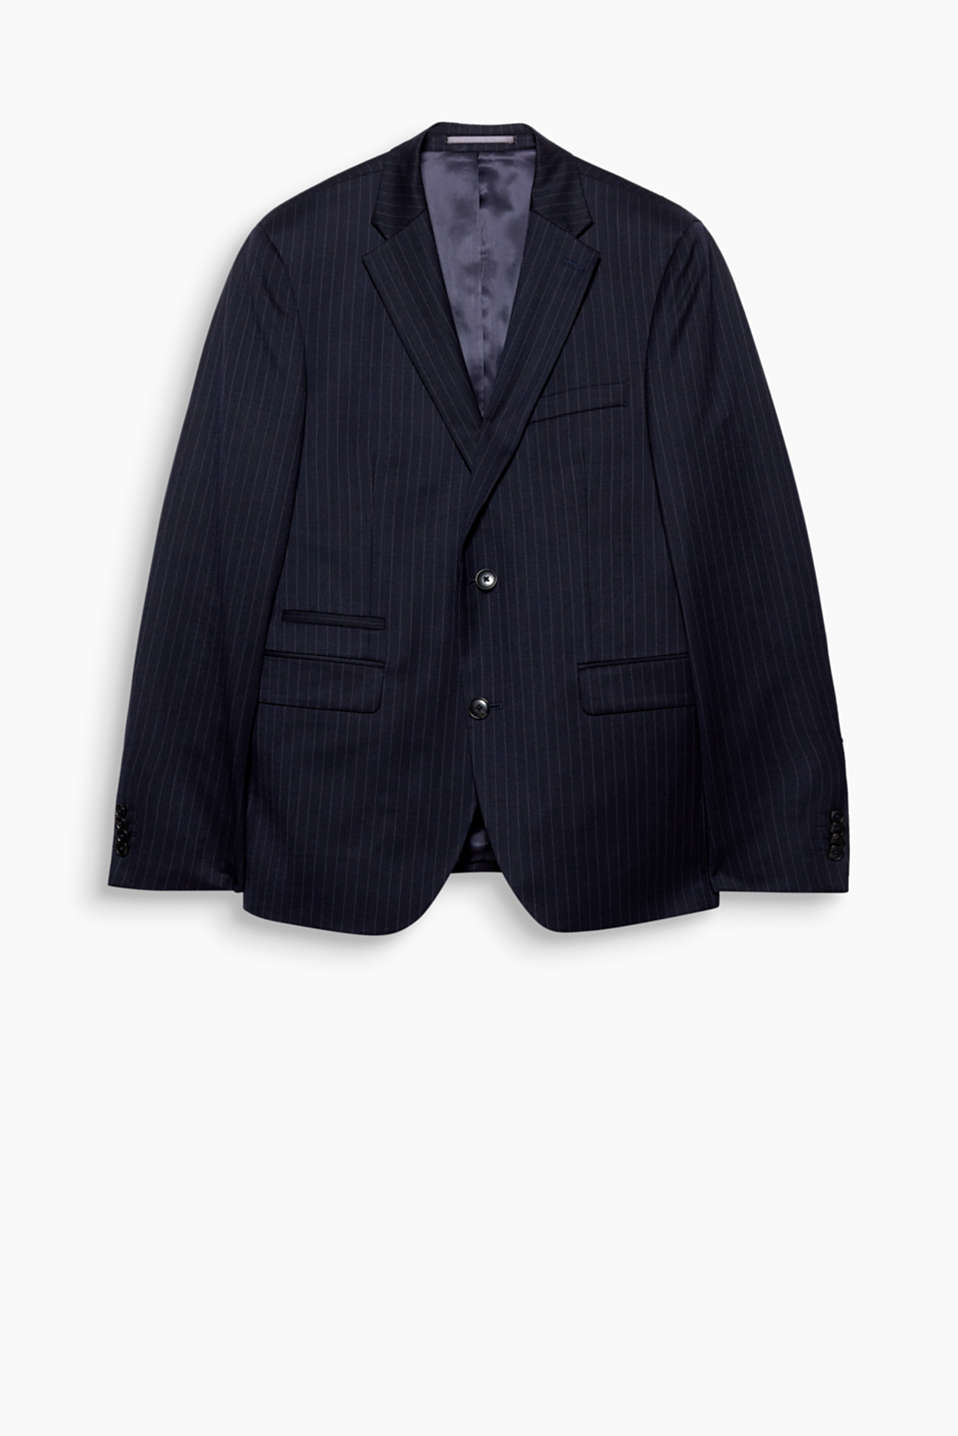 This chic jacket impresses with its pinstripe look and exceptionally fine wool blend